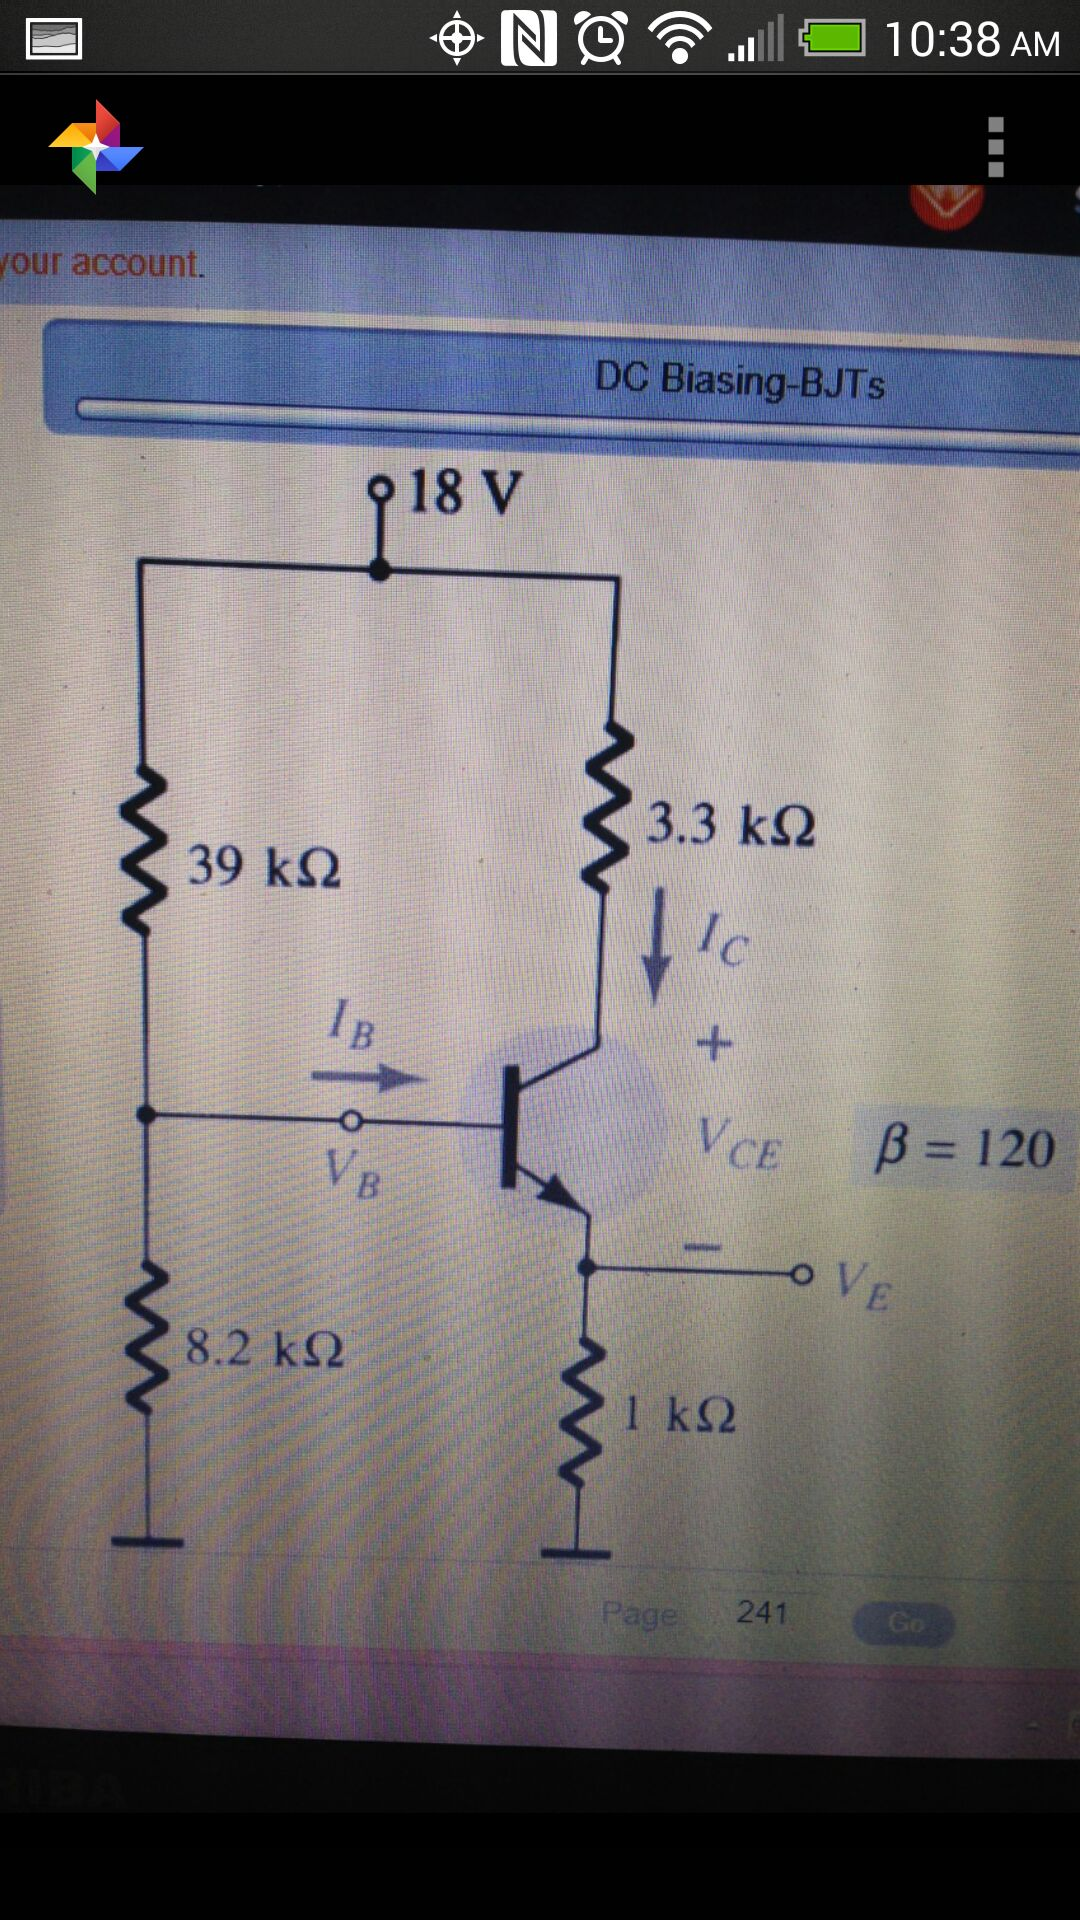 Find IC, VCE, IE, VE using both the approximate me